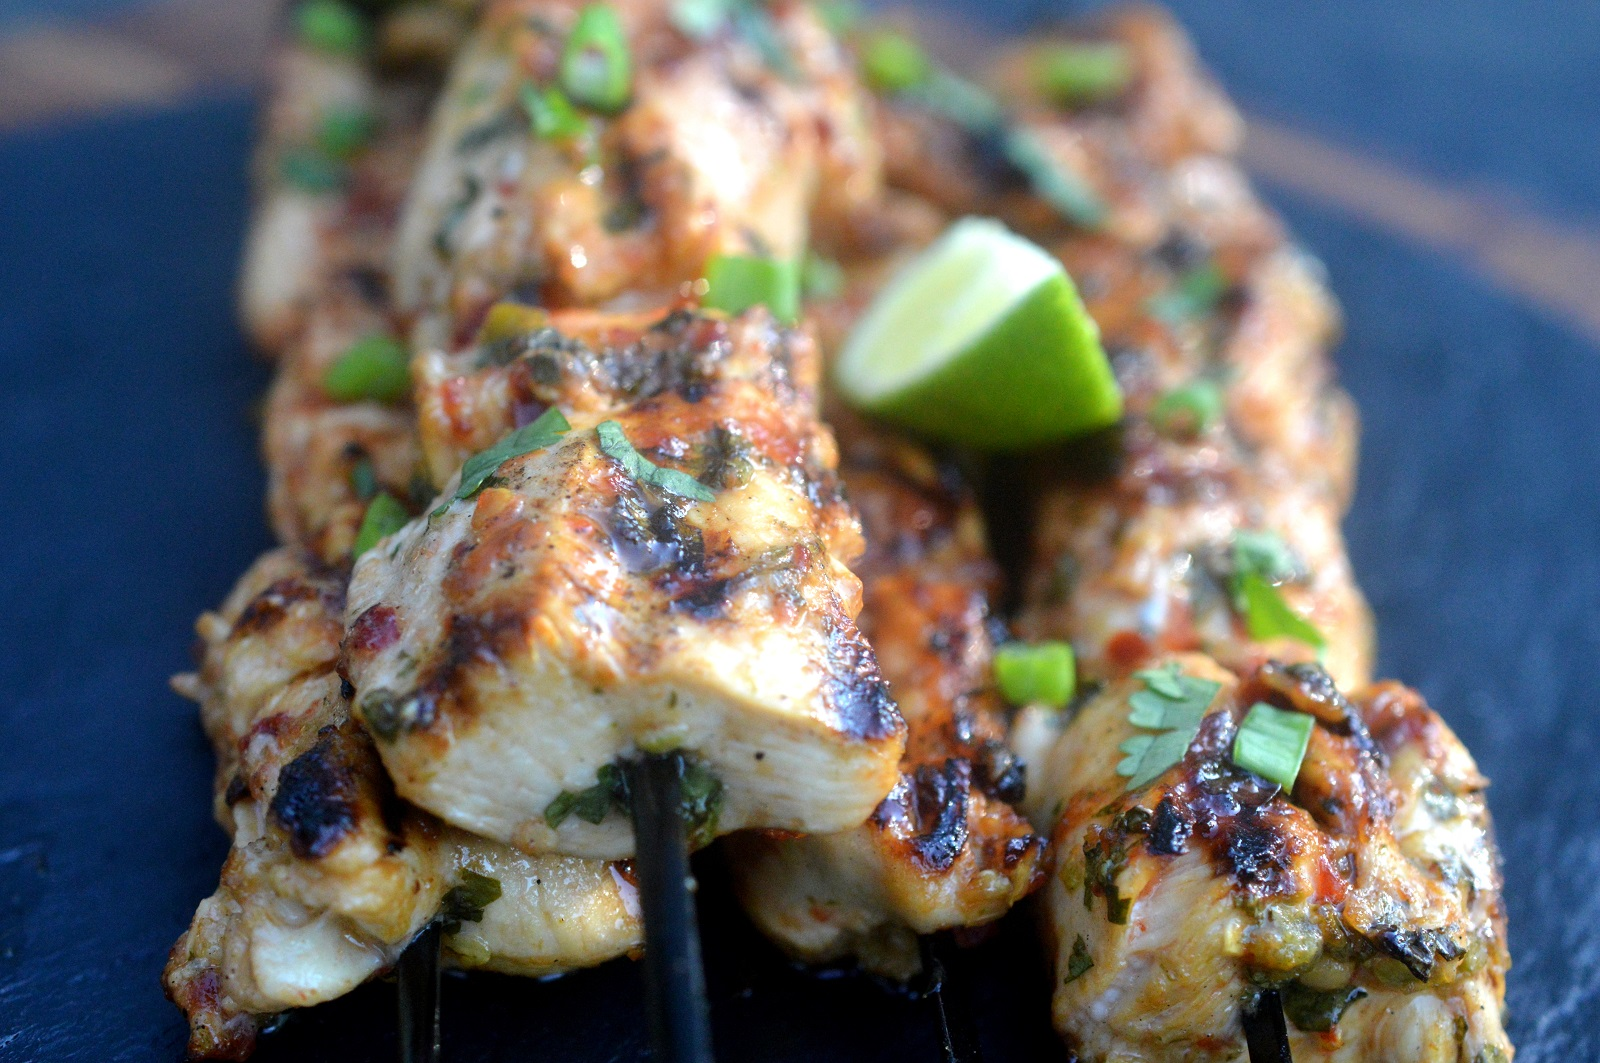 Grilled Chili Lime Chicken Skewers